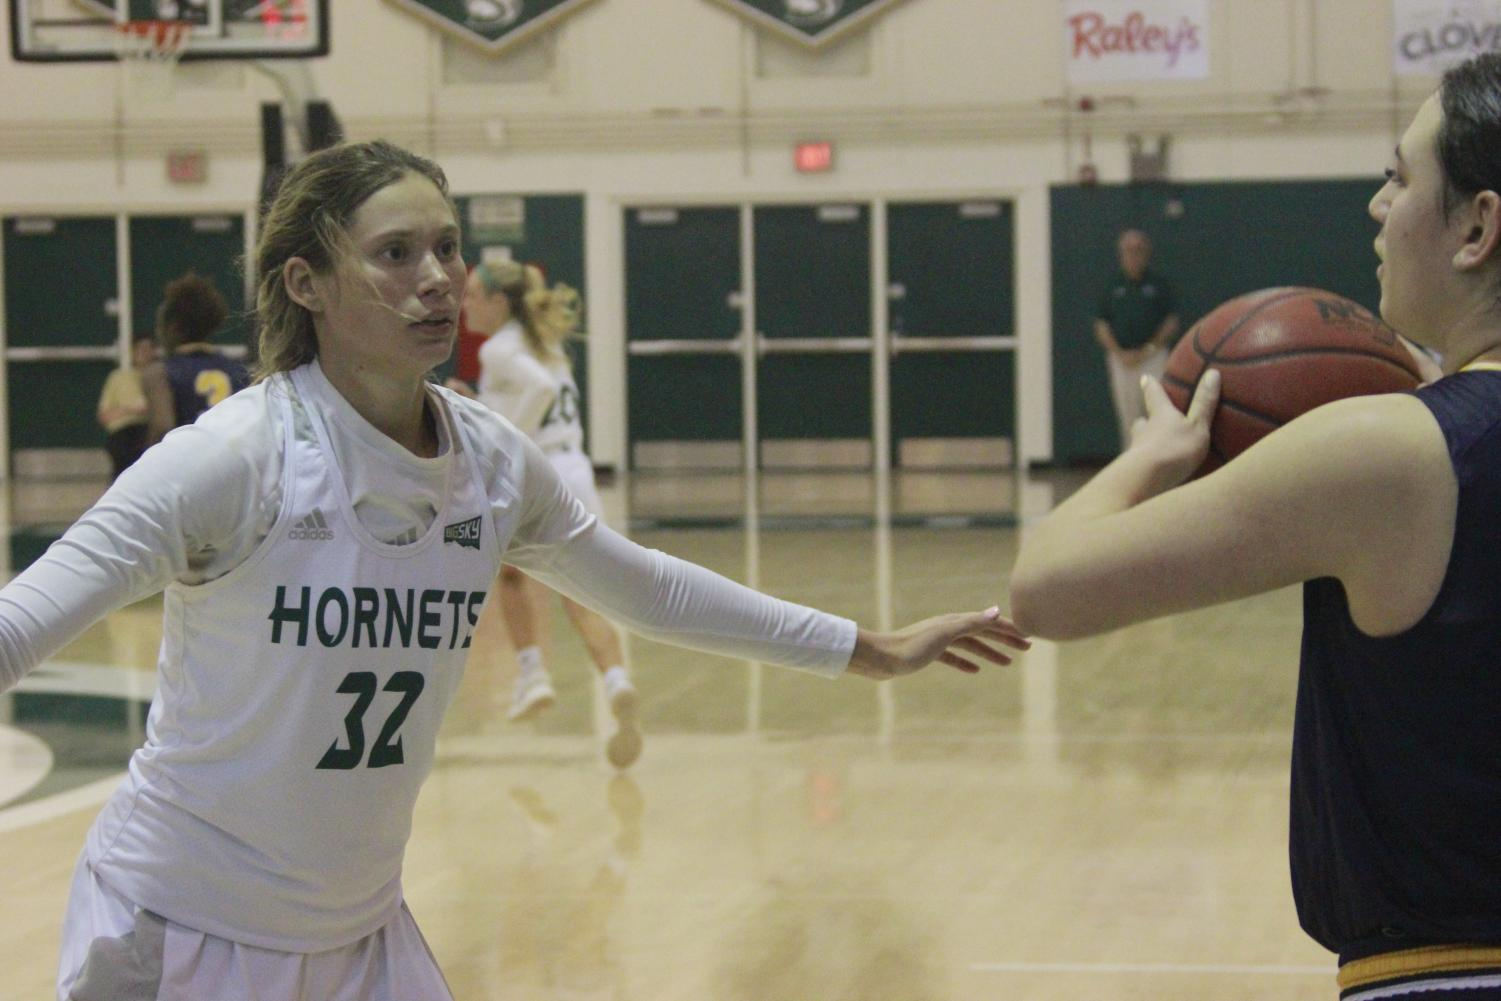 Sac State junior guard Hannah Friend guards an inbounds pass in a 71-61 loss to Portland State at the Nest on Feb. 11. Friend scored a team-high 20 points to put her over 1,000 career collegiate points.